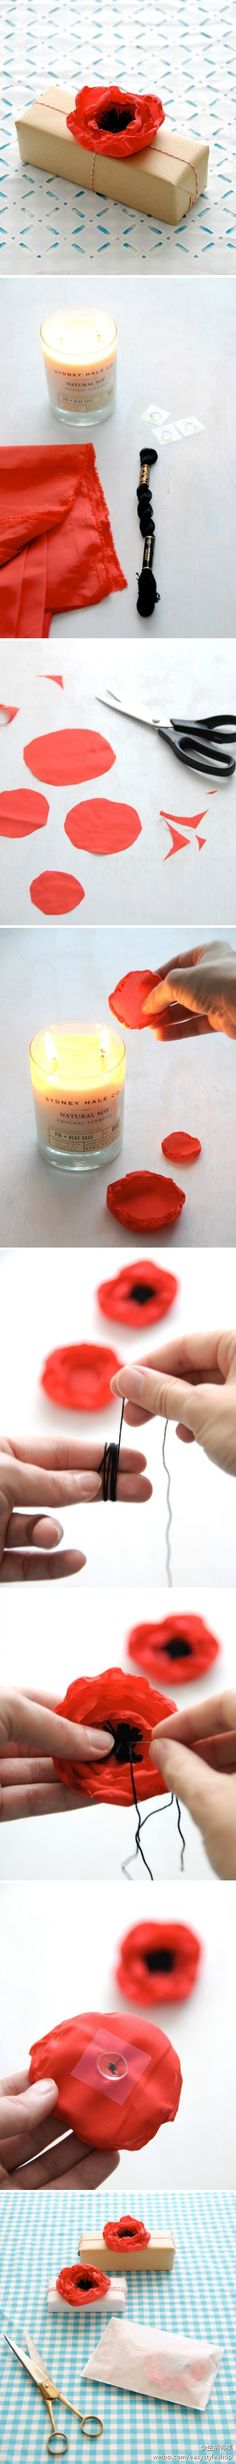 DIY lovely poppy flower petal gift decoration - be sure to use polyester fabric (the kind of umbrella m ...